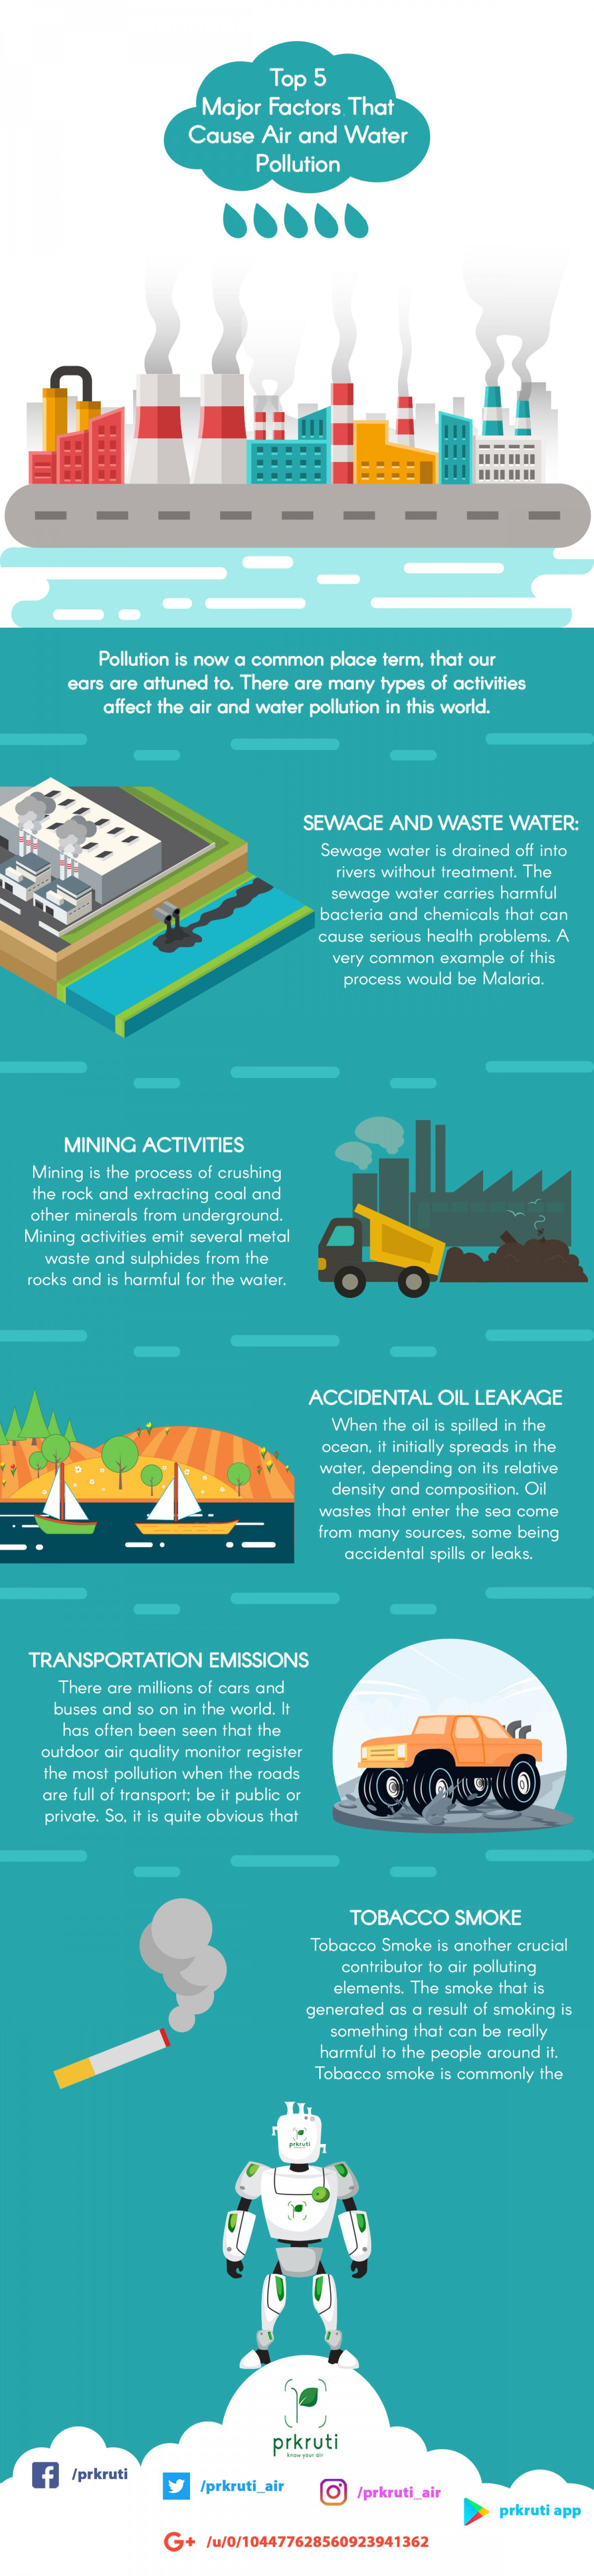 Top 5 Major Factors That Cause Air And Water Pollution